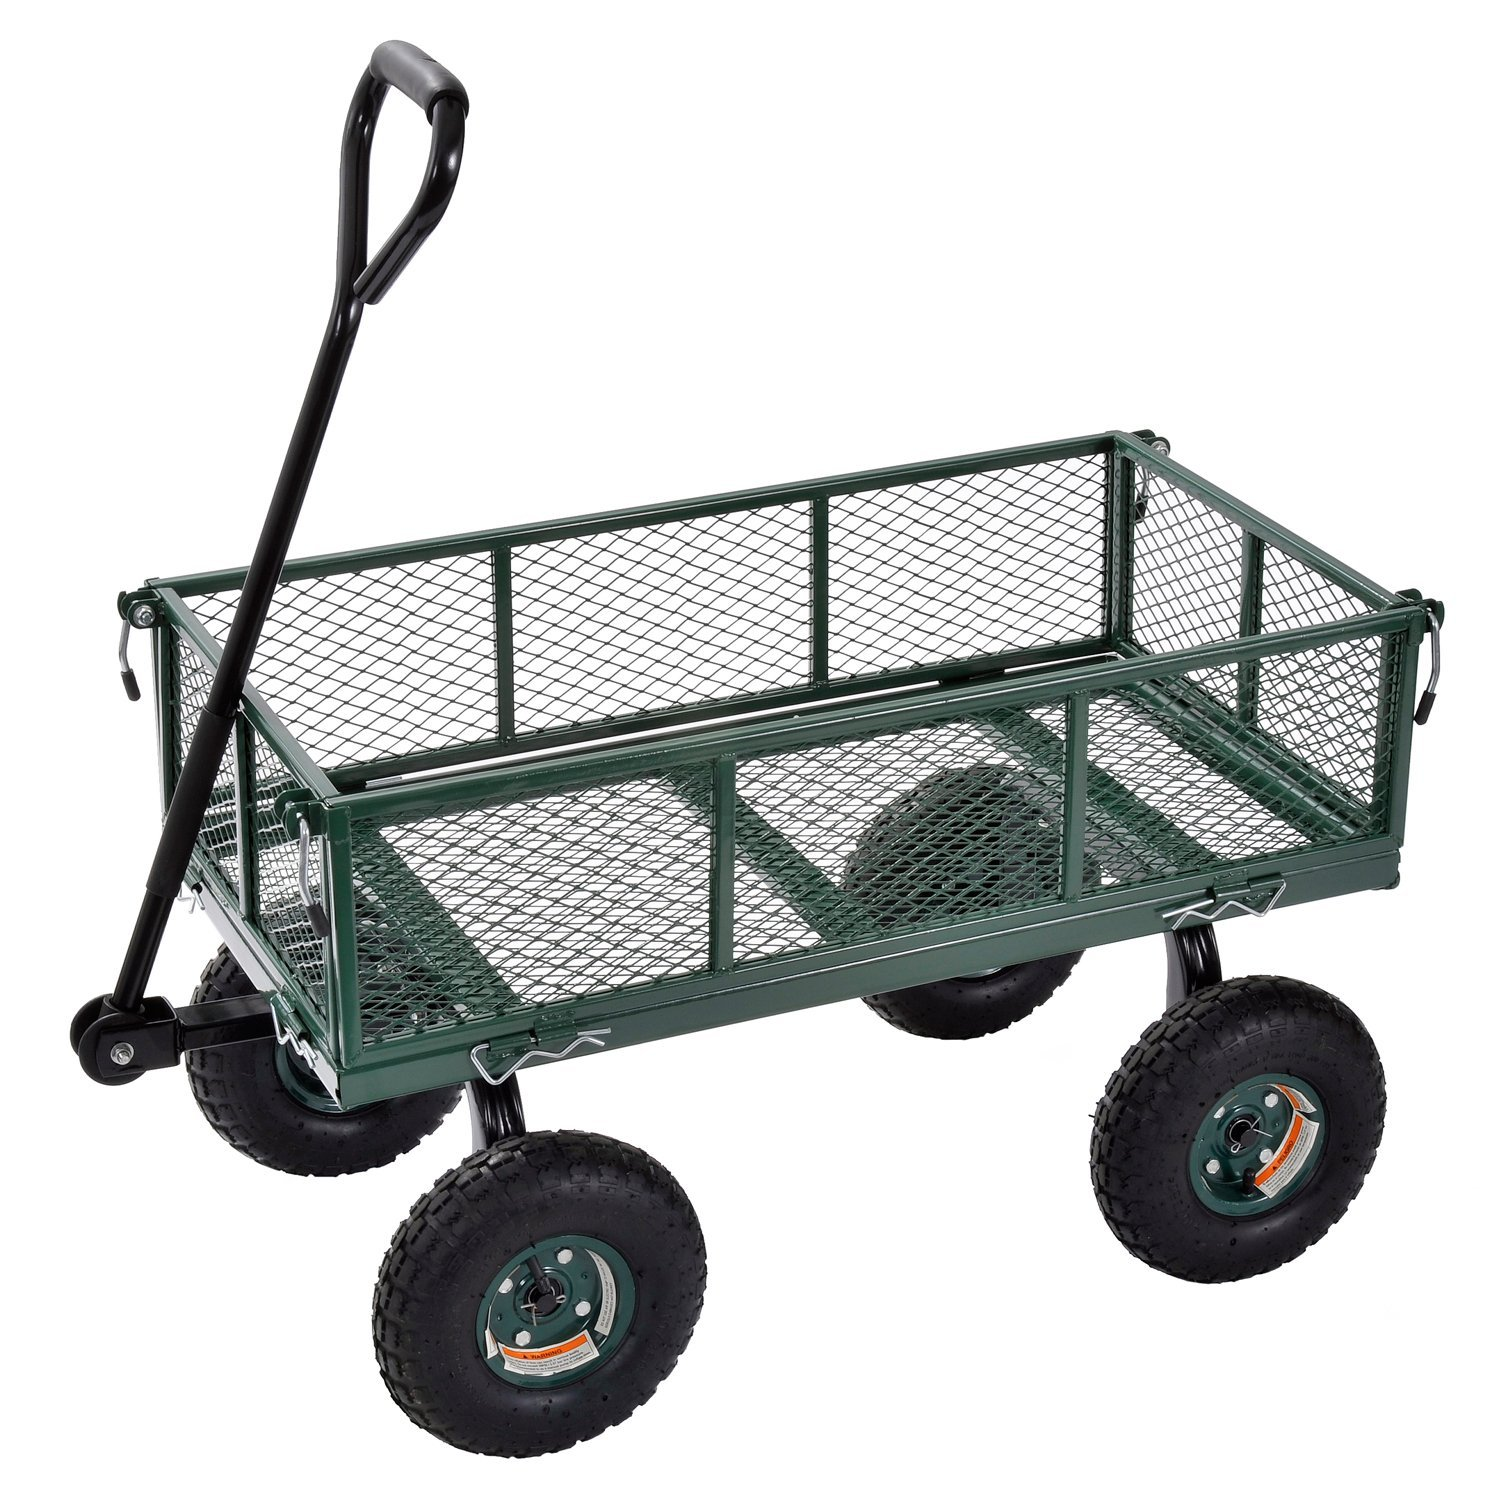 Sandusky Lee CW3418 Muscle Carts Steel Utility Garden Wagon, 400 lb. Load Capacity, 21-3/4'' Height x 34'' Length x 18'' Width by Sandusky